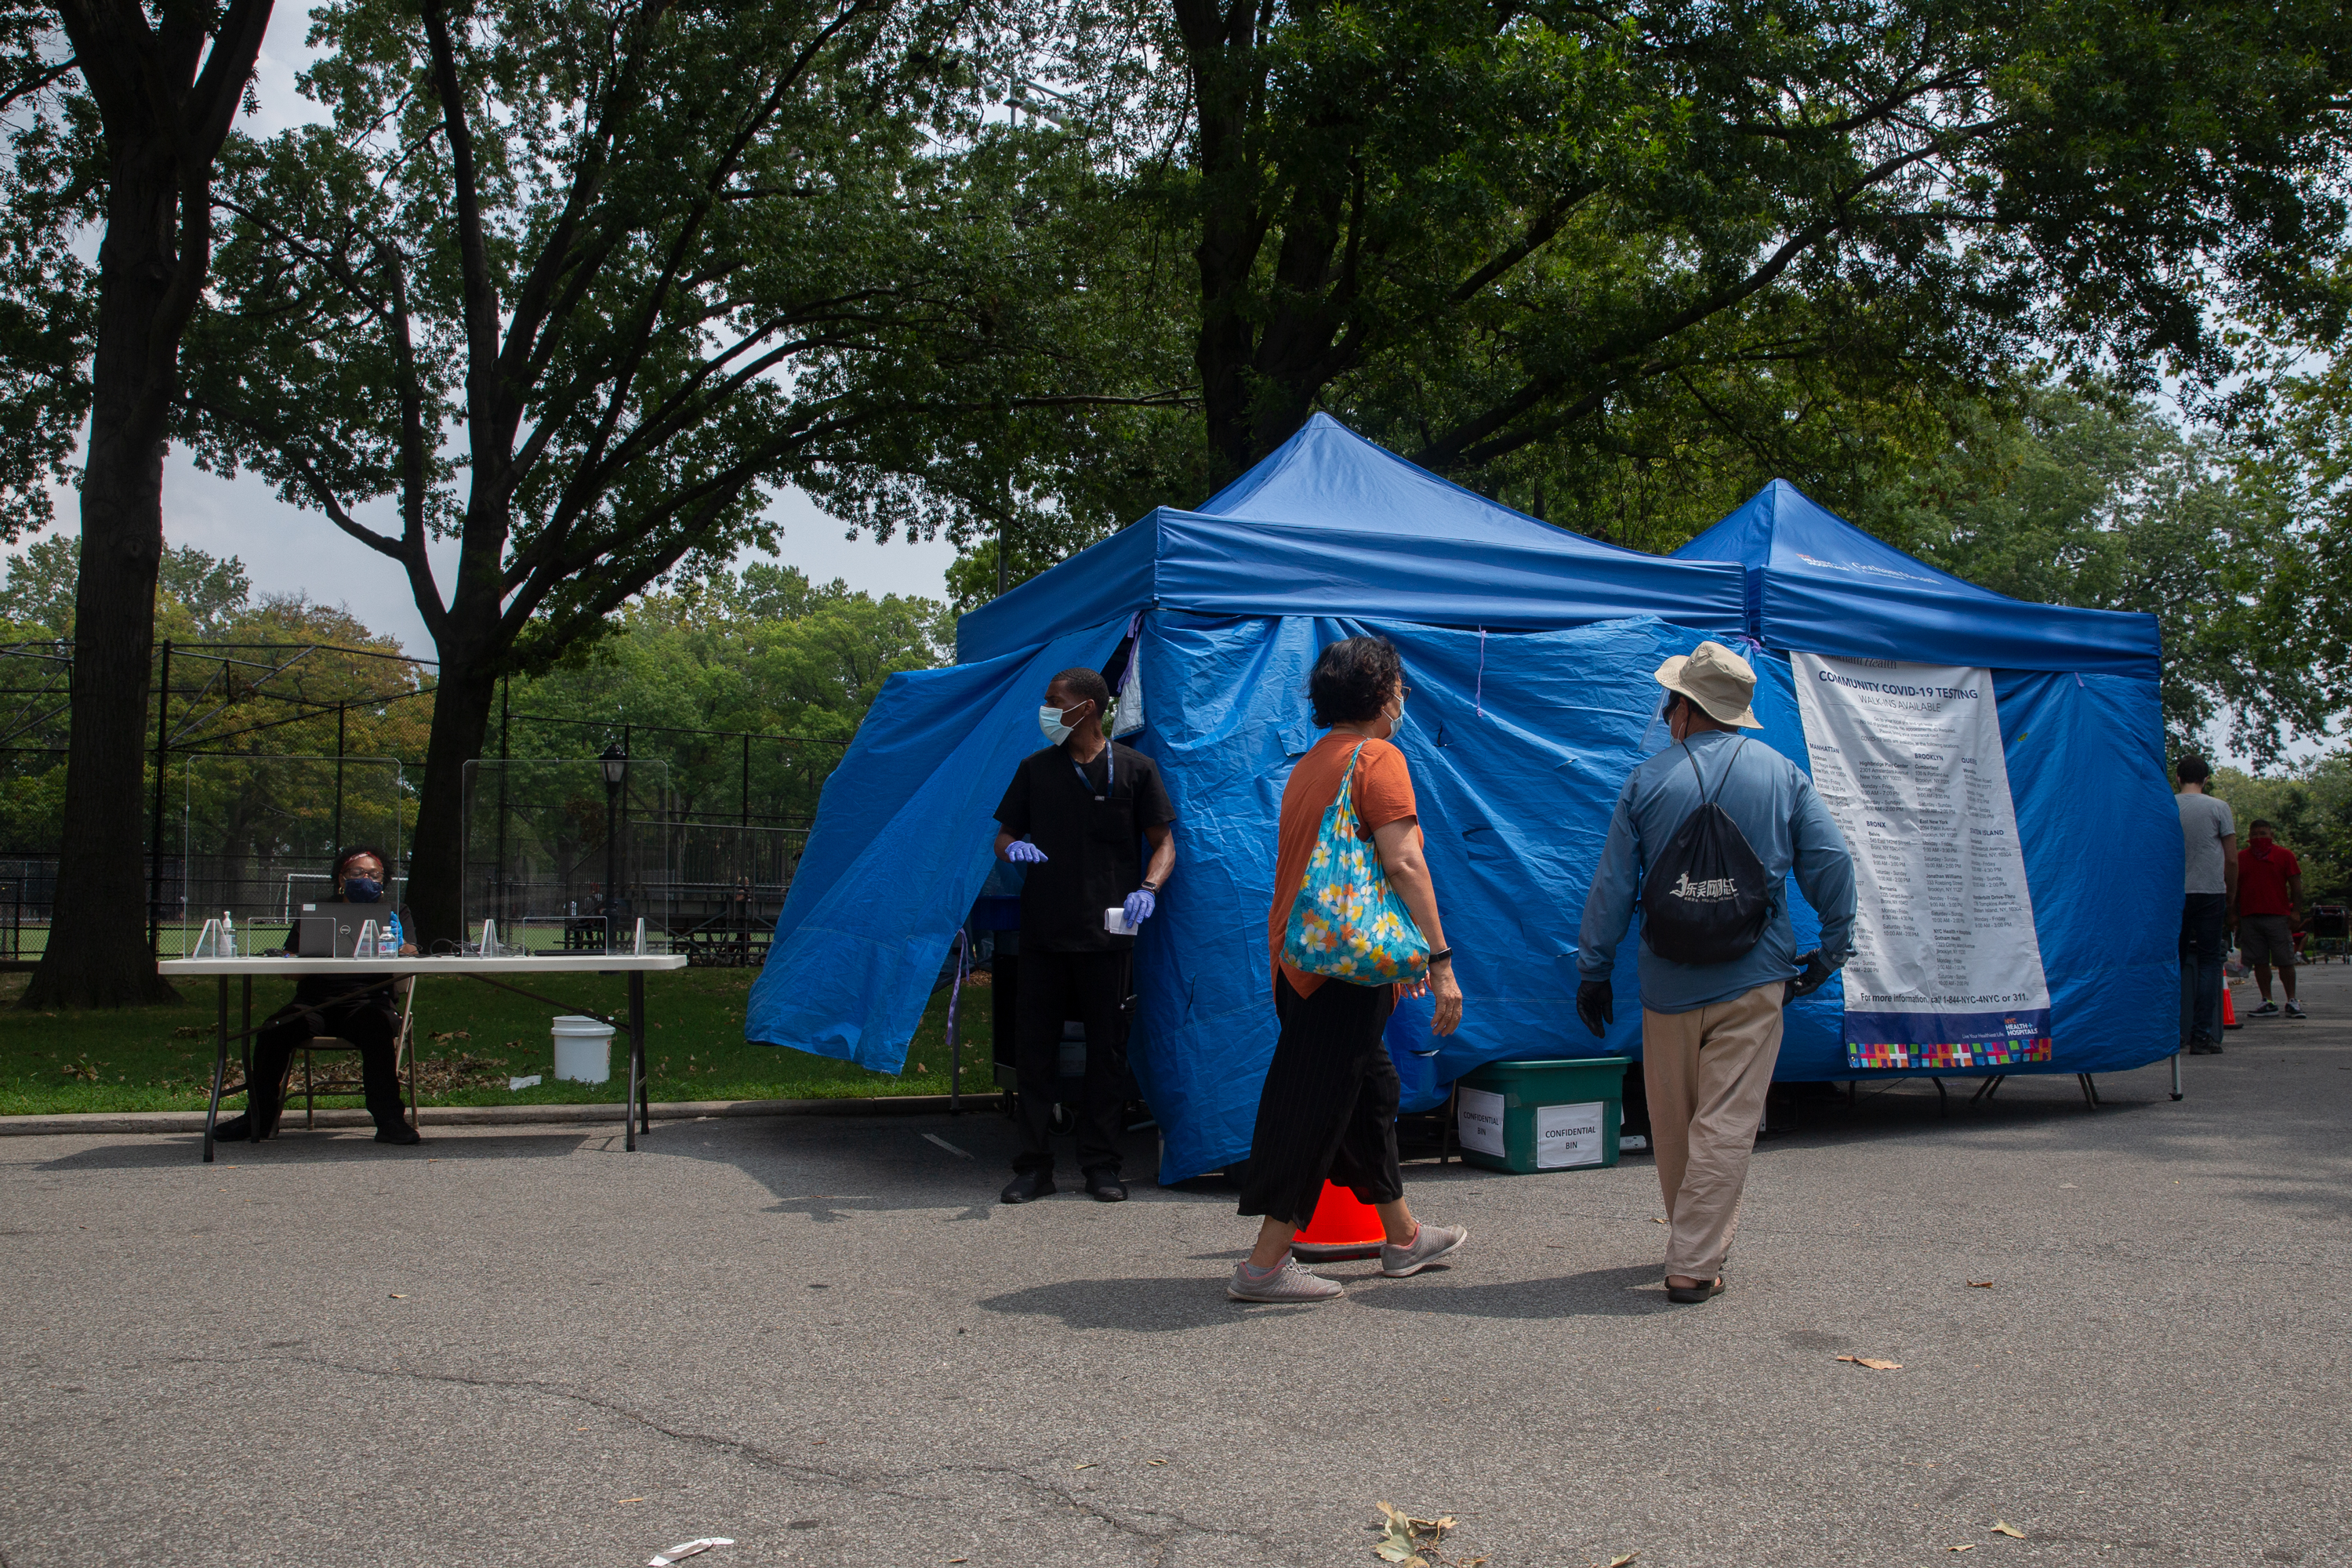 The city set up a free coronavirus testing site in Sunset Park, Brooklyn, Aug. 12, 2020.